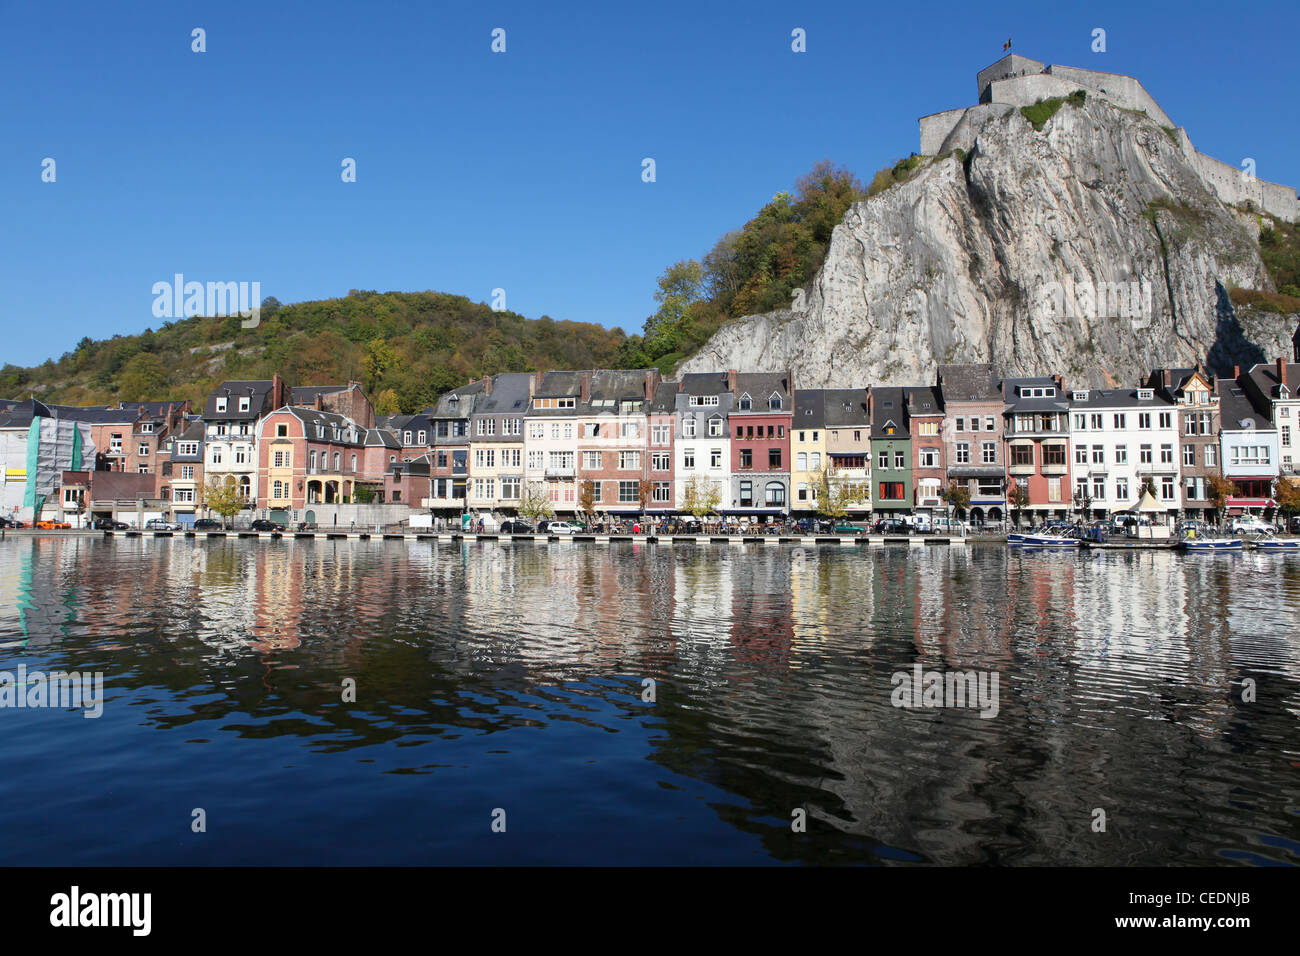 Citadelle and houses at the shore of the Meuse river in Dinant, Wallonia, Belgium. - Stock Image